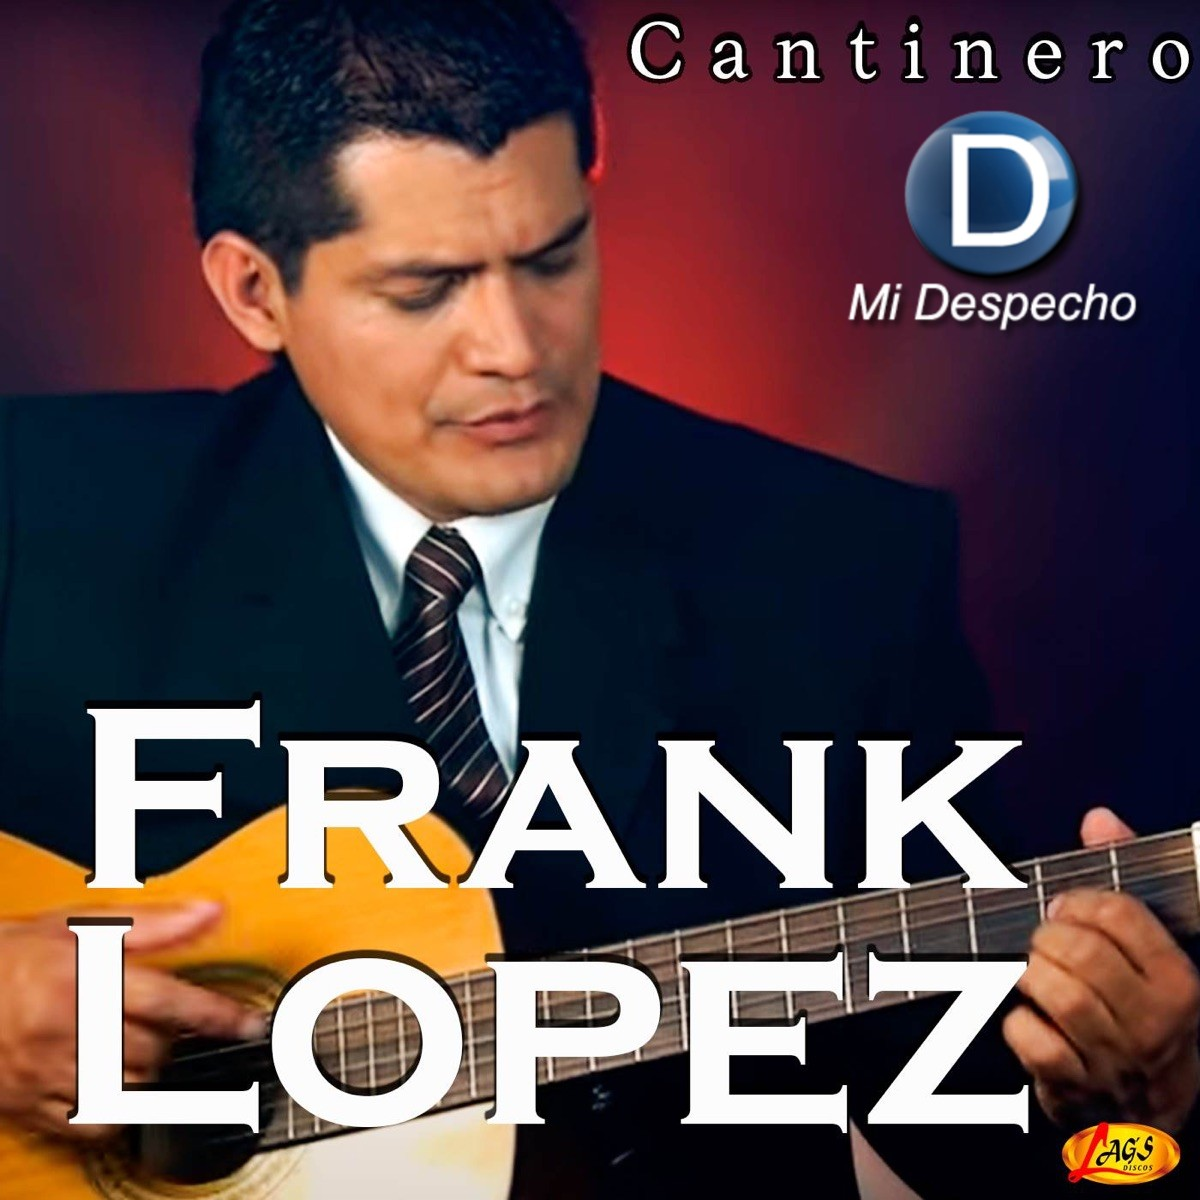 Frank Lopez Cantinero Frontal